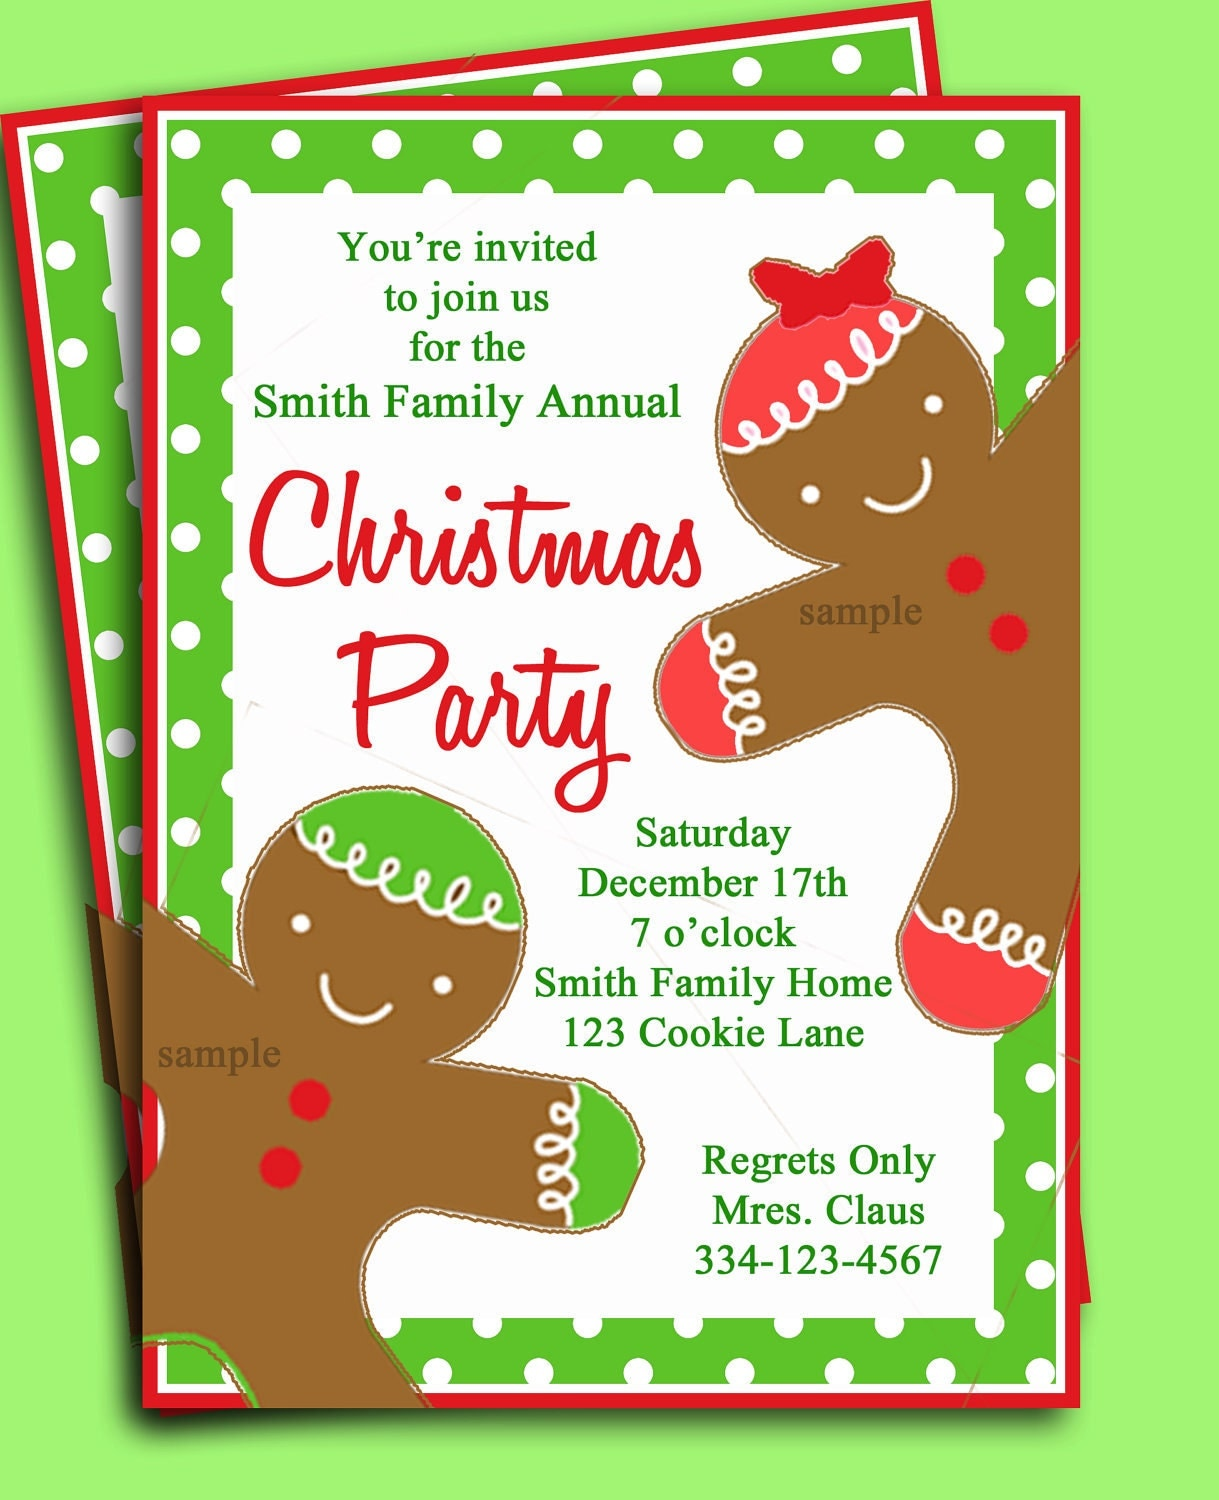 Christmas Potluck Invitations for amazing invitations ideas